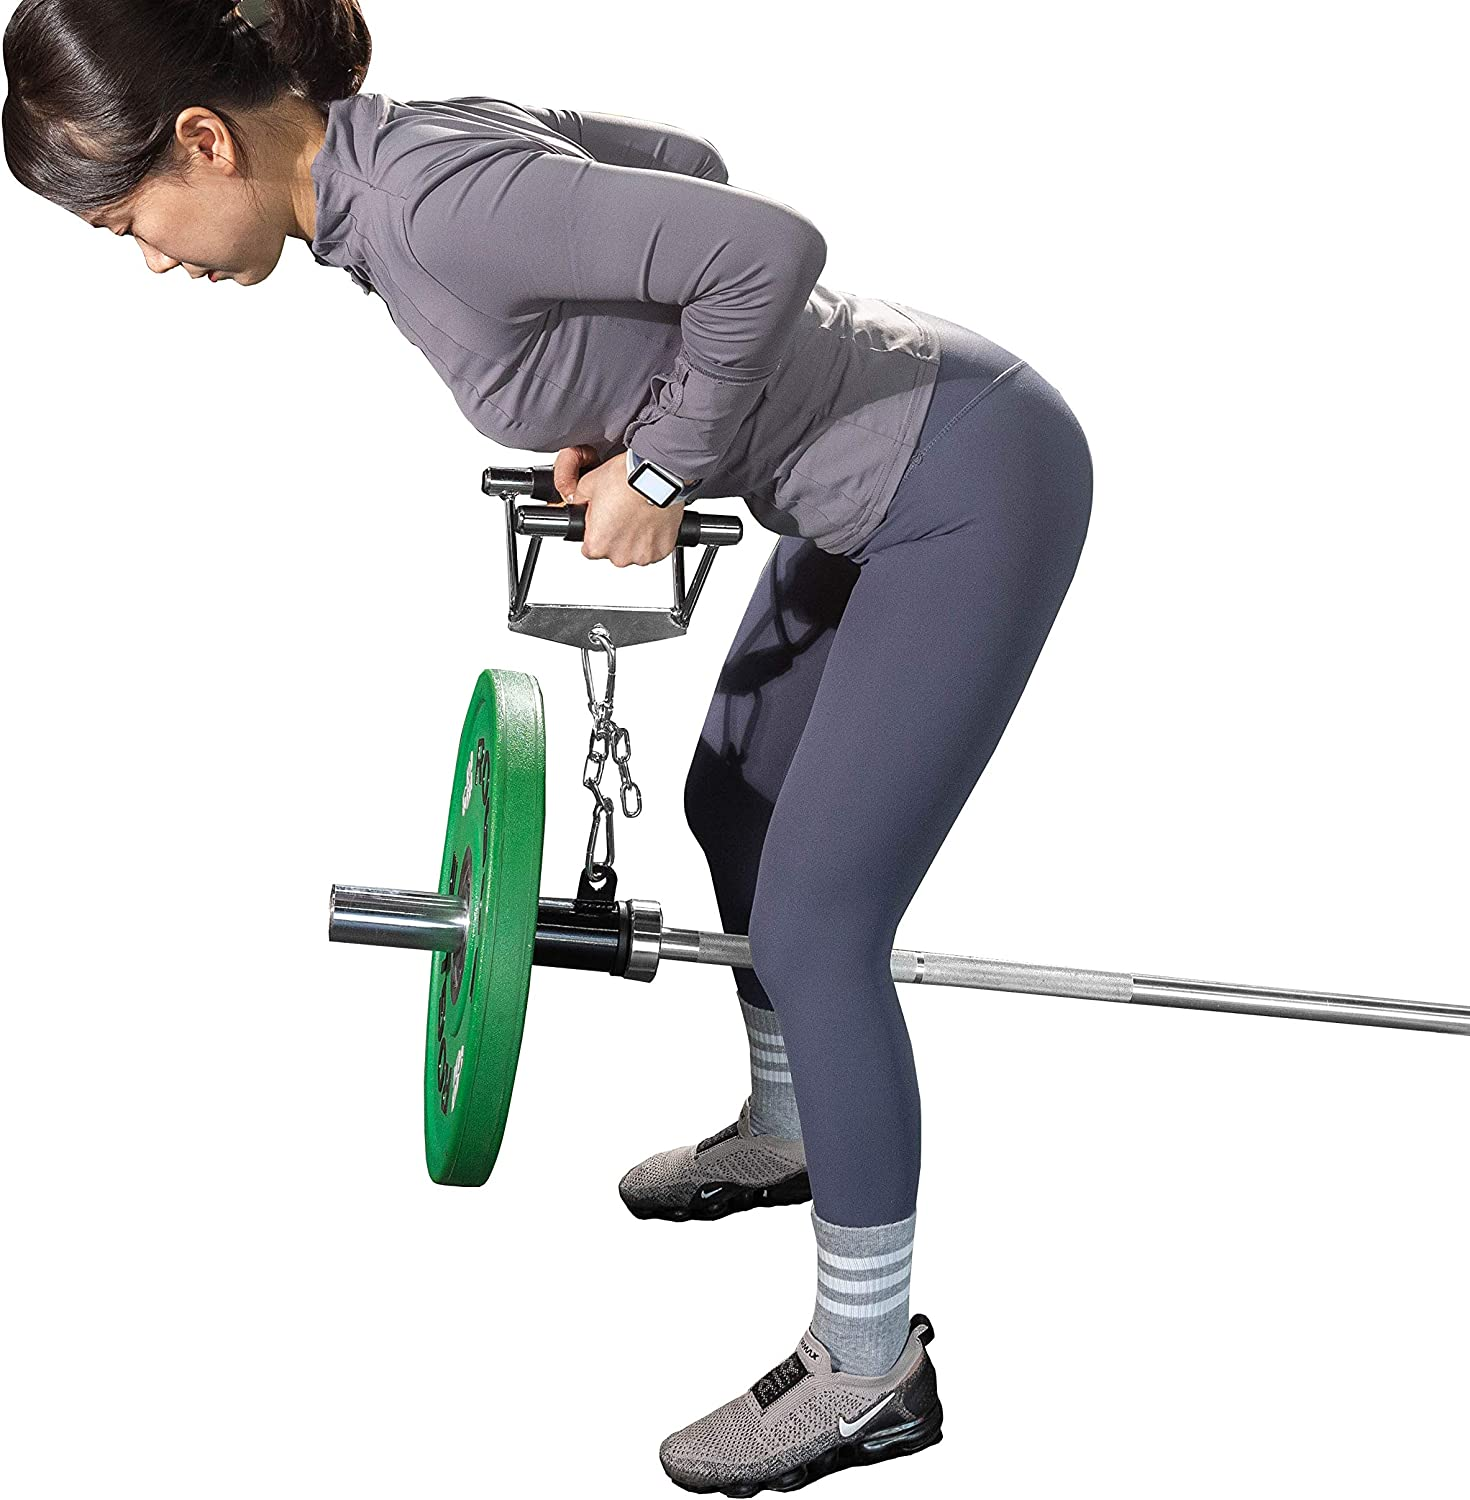 """T-bar Row Platform Landmine Attachment with Chain- Fit 2"""" Olympic Bar - Use with Cable Machine Attachment Hand : Sports & Outdoors"""